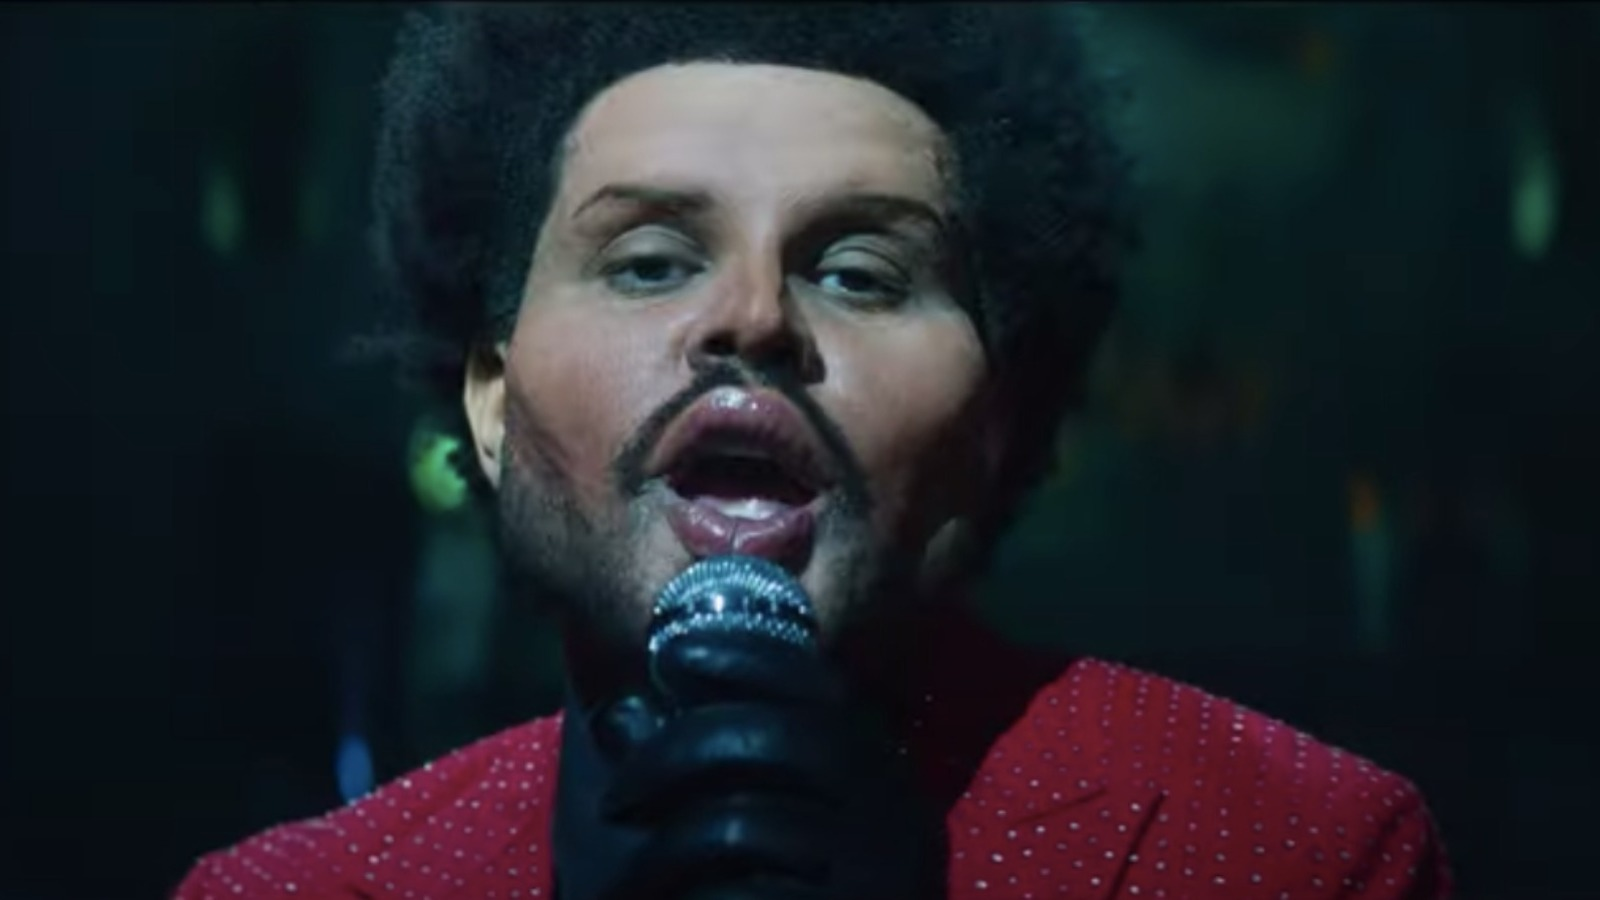 What's really going on with The Weeknd's face?